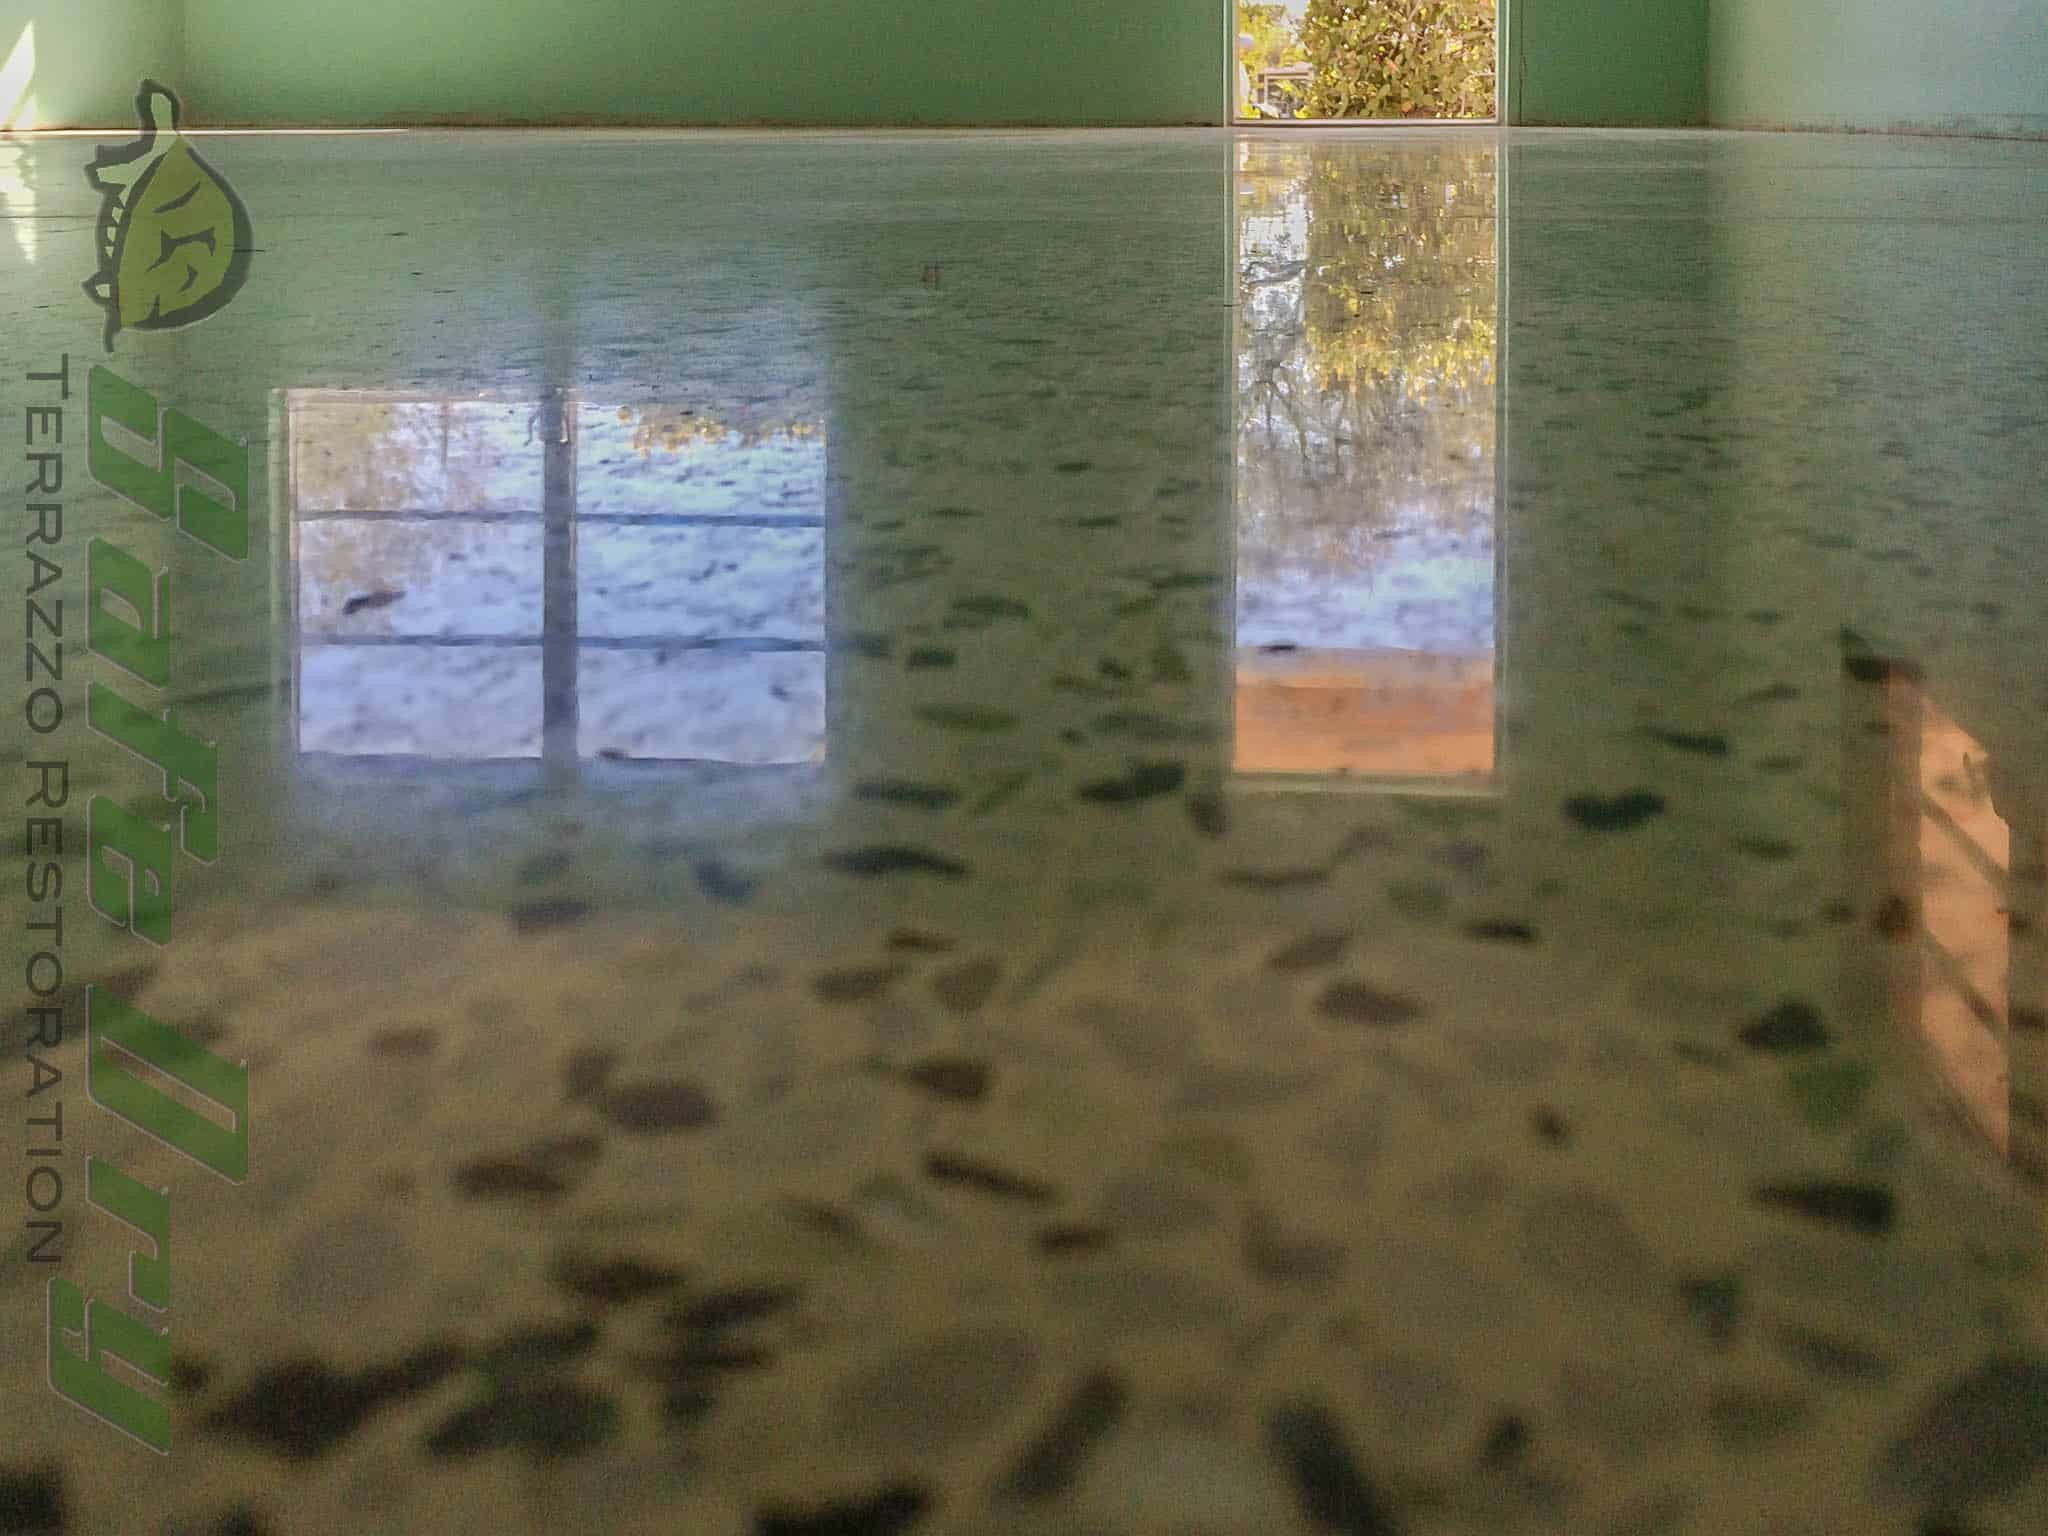 Terrazzo - the heart of Florida's mid-century modern homes